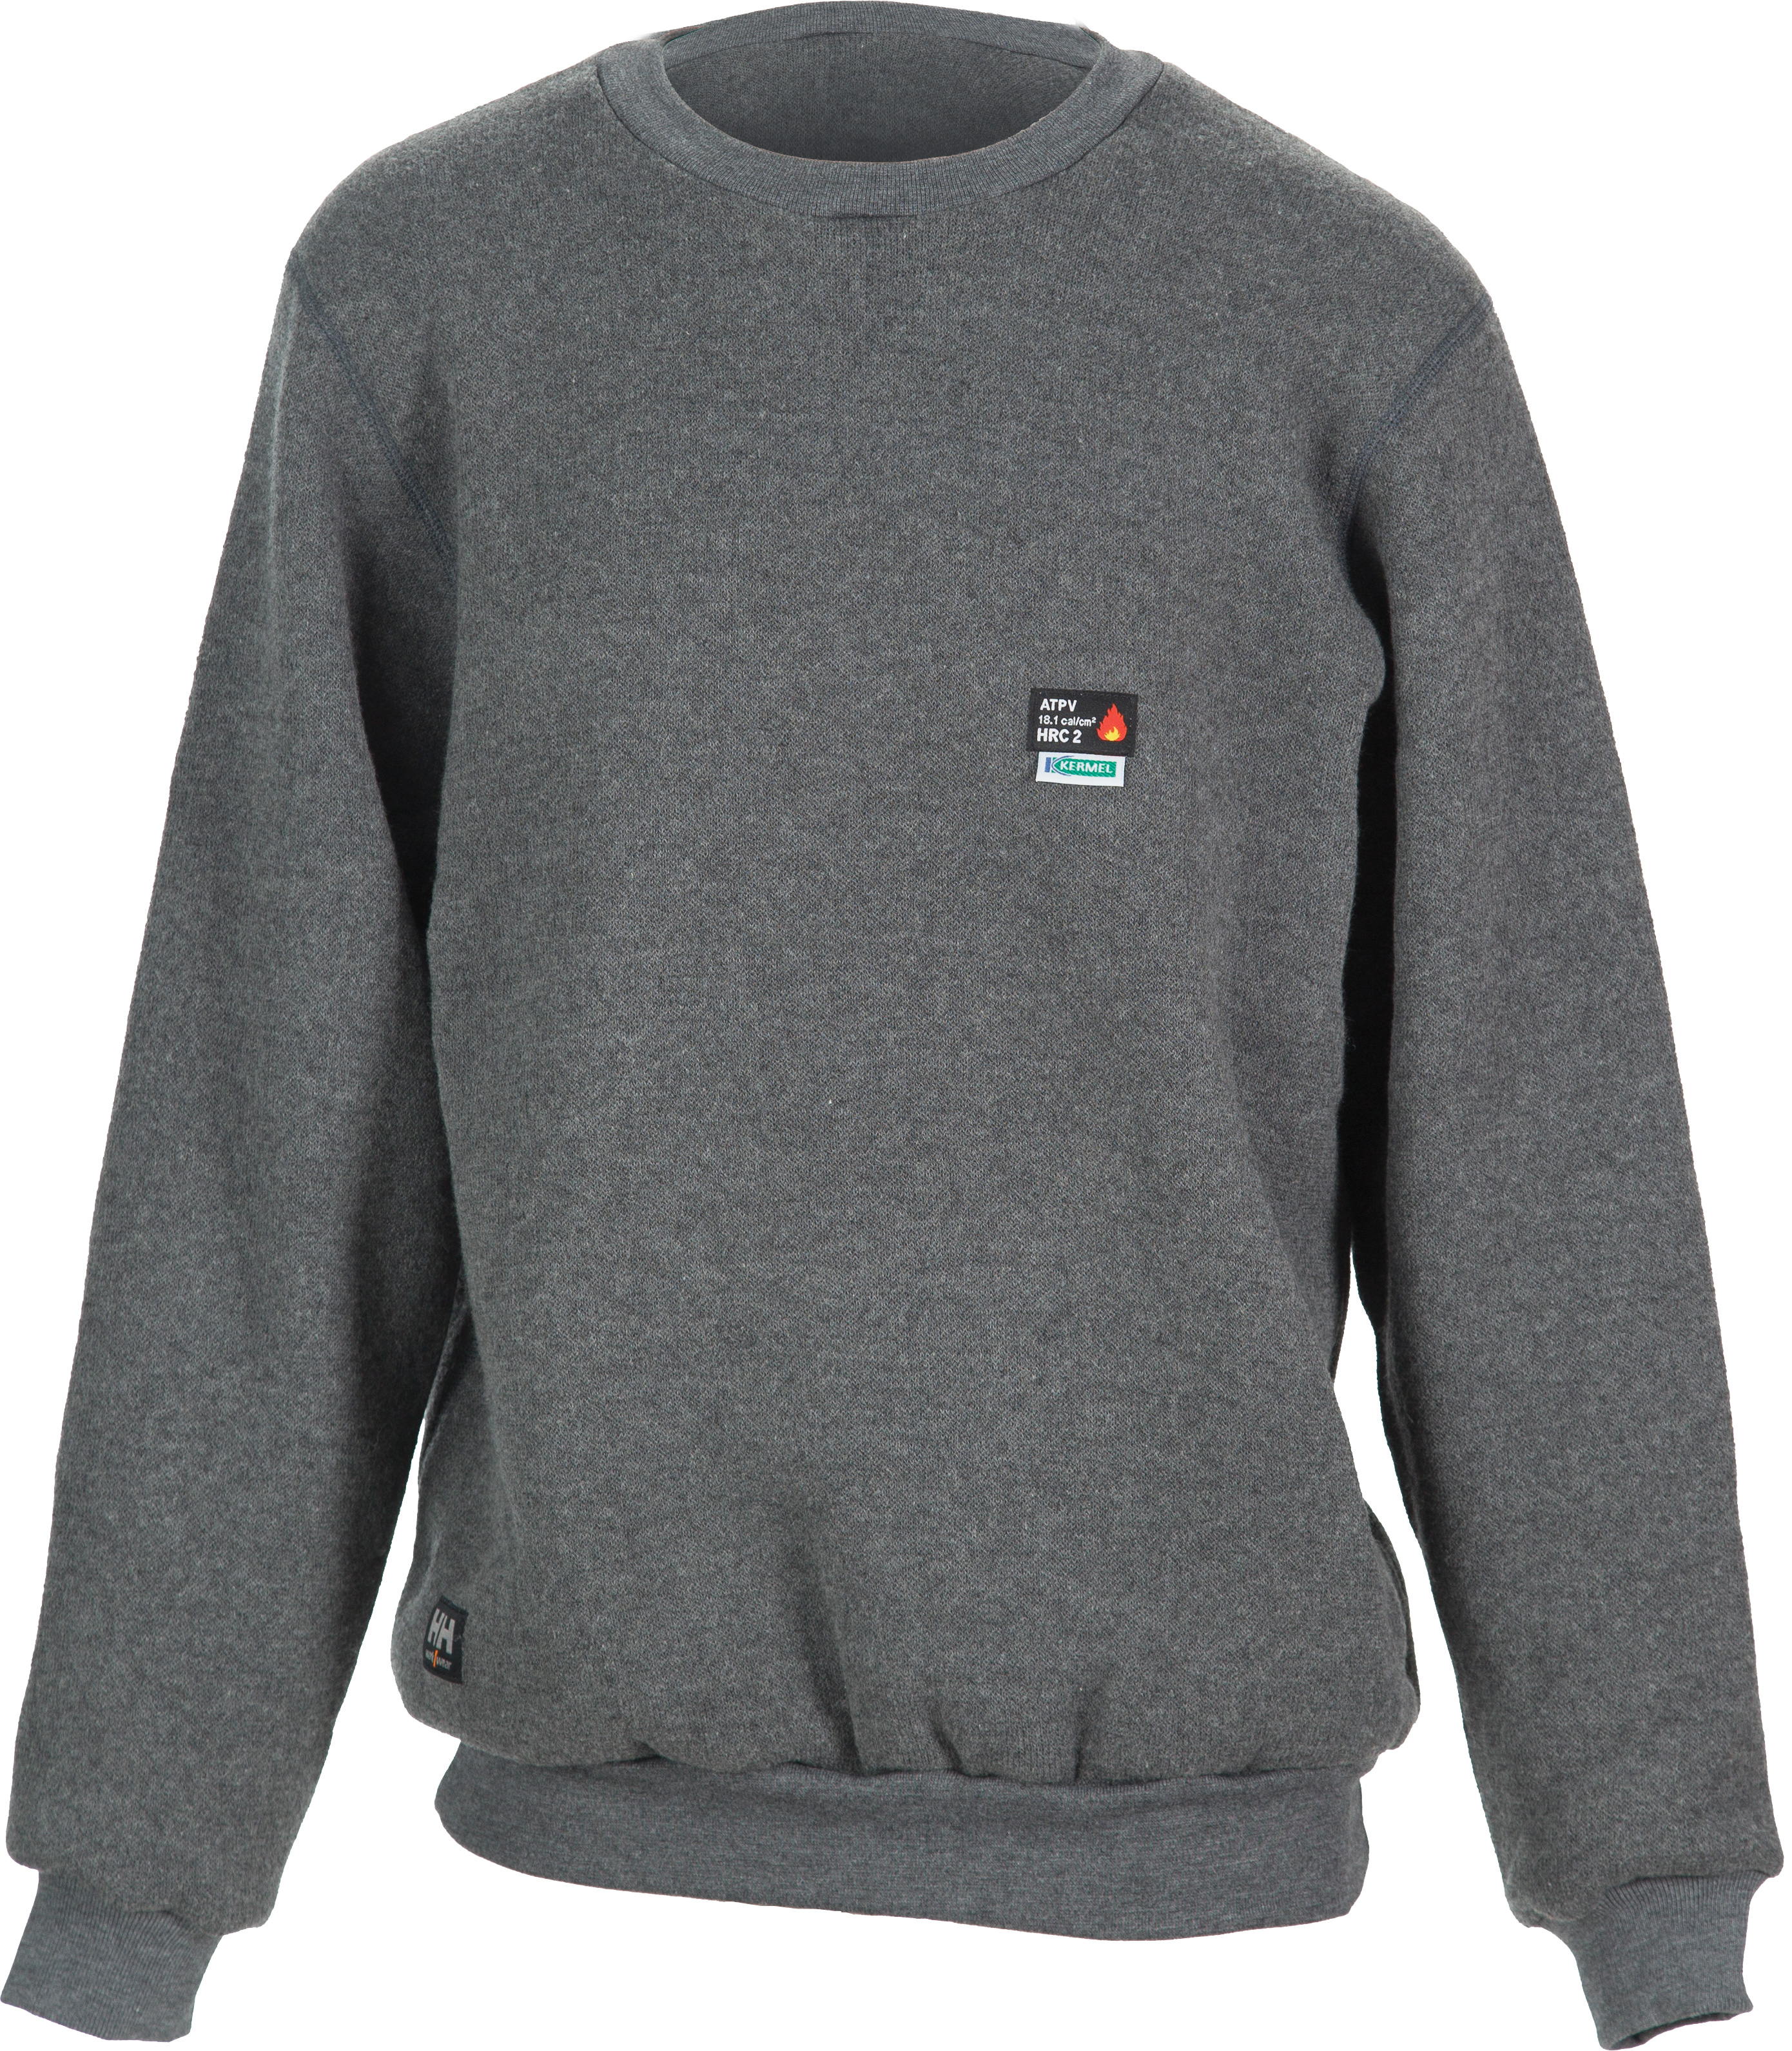 a395640ff7d6 Duluth Fire Resistant Sweater - Helly Hansen 72237 — iWantWorkwear